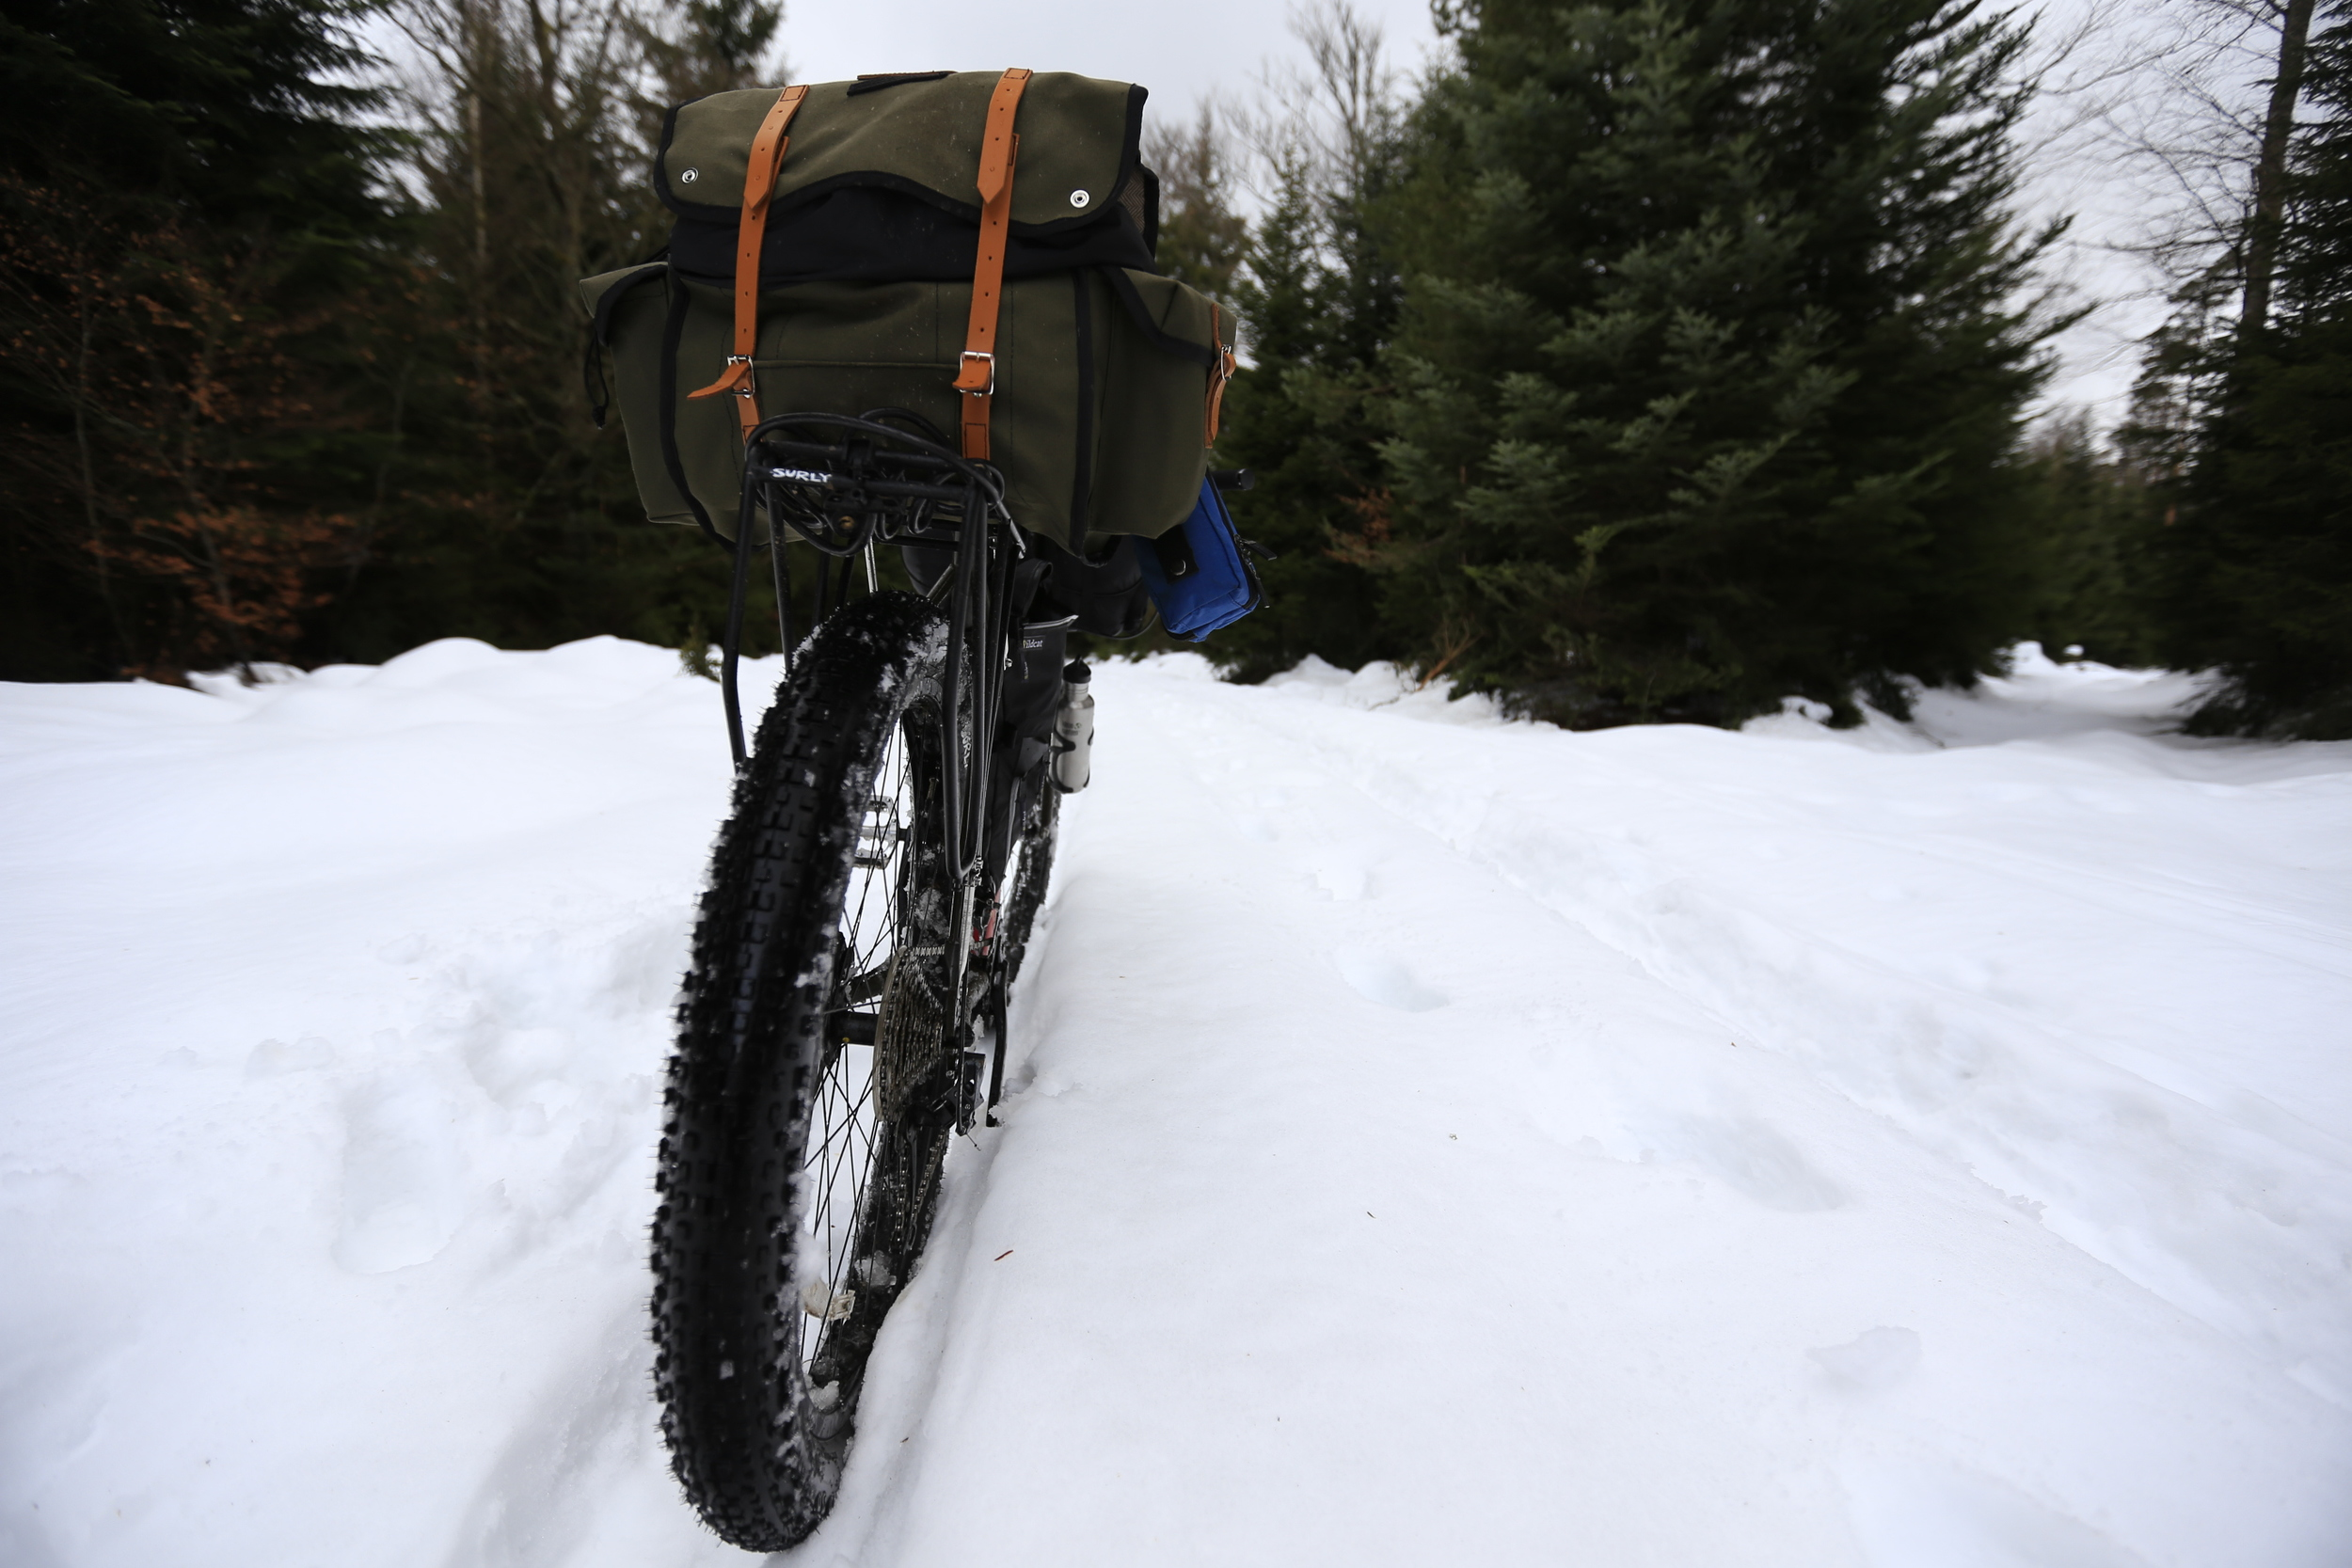 surly, surly ecr, carradice, germany, black forest, carradice longflap camper, snow, camping, bike tour, fat bike, pannier, surly nice rack